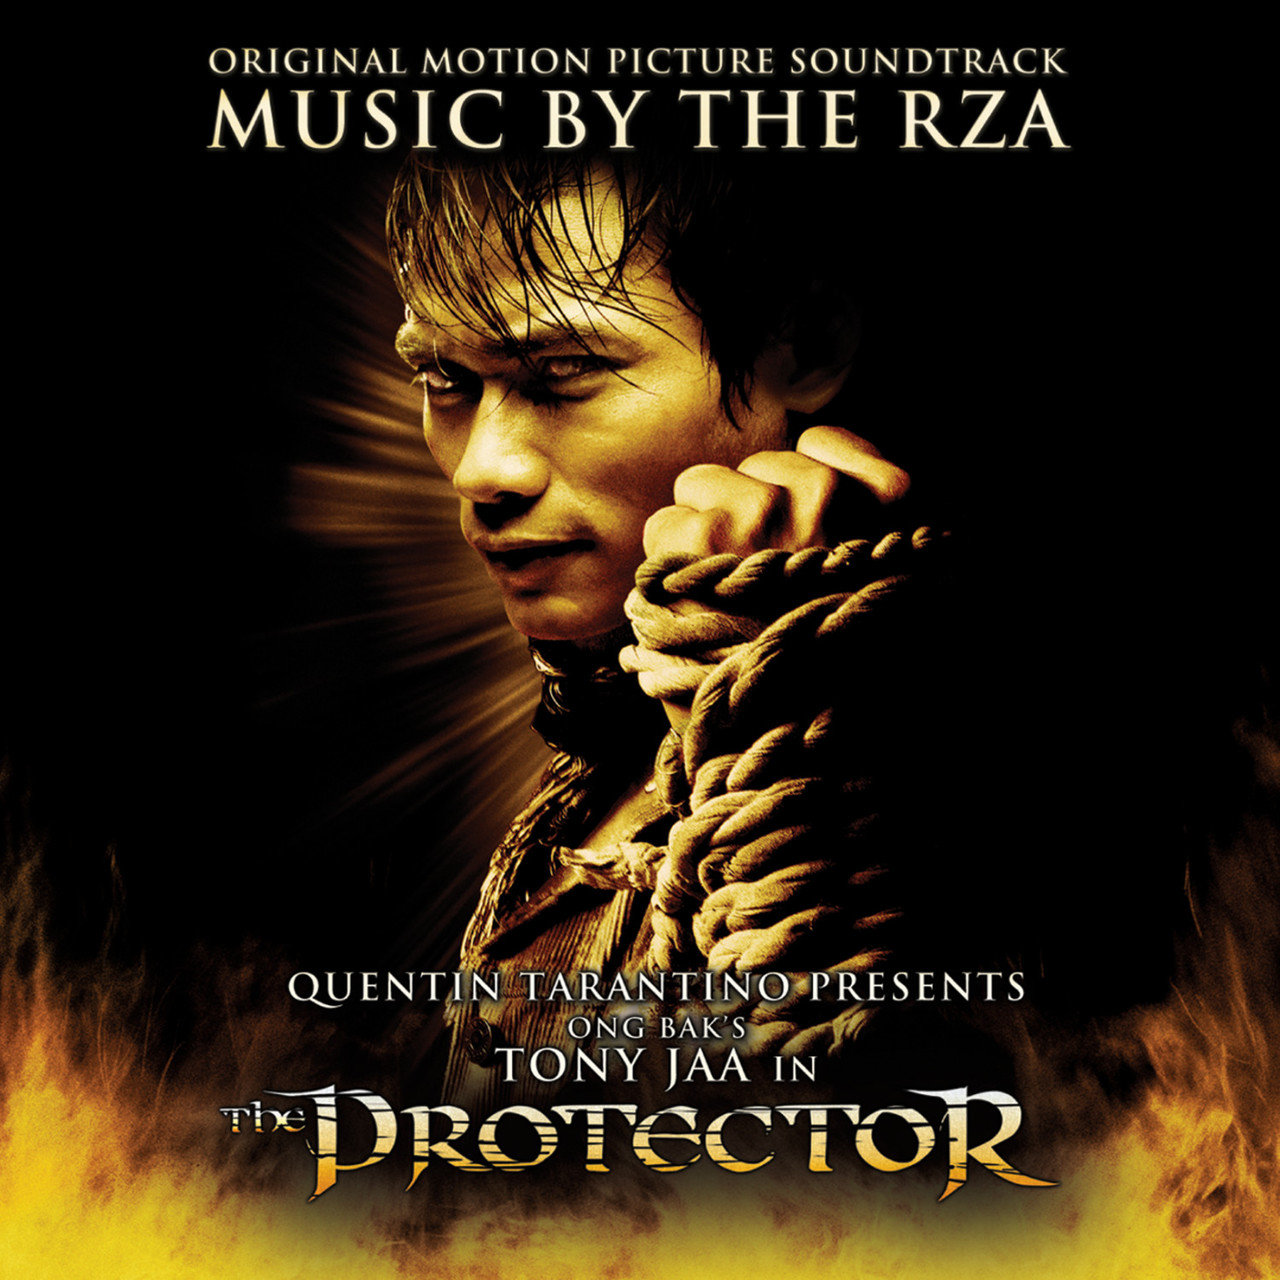 The Protector (Orignial Motion Picture Soundtrack- Music By The Rza)